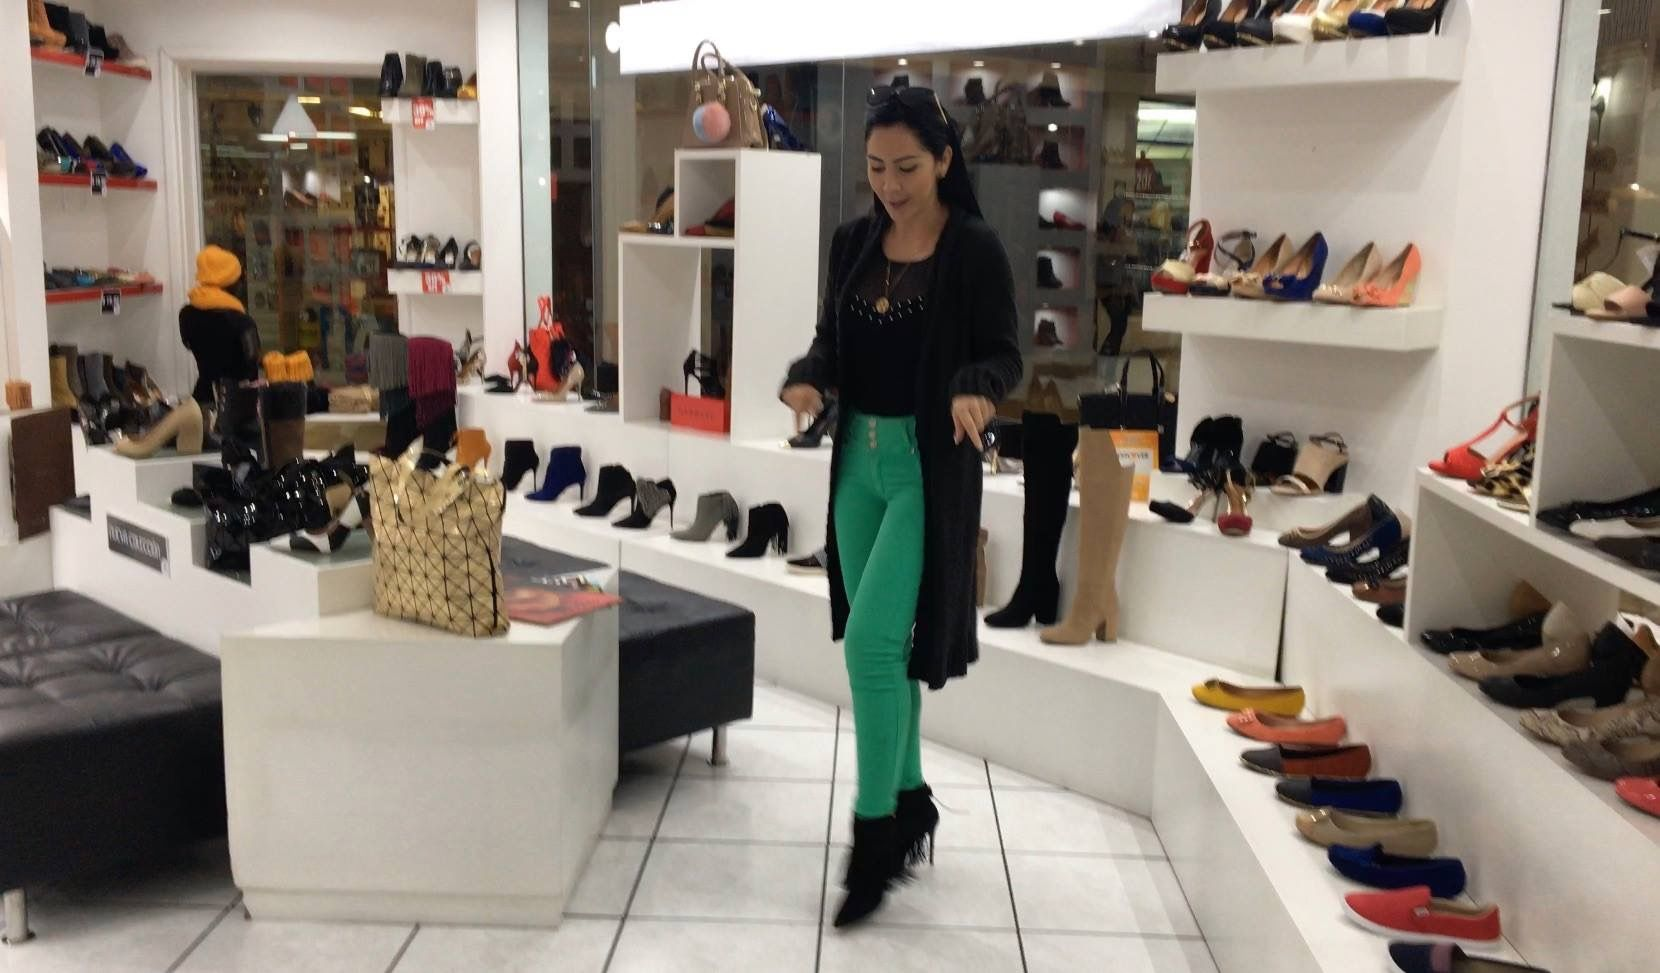 Dpars Fashionblogger Dparslover Shopping Zapatos Shoes